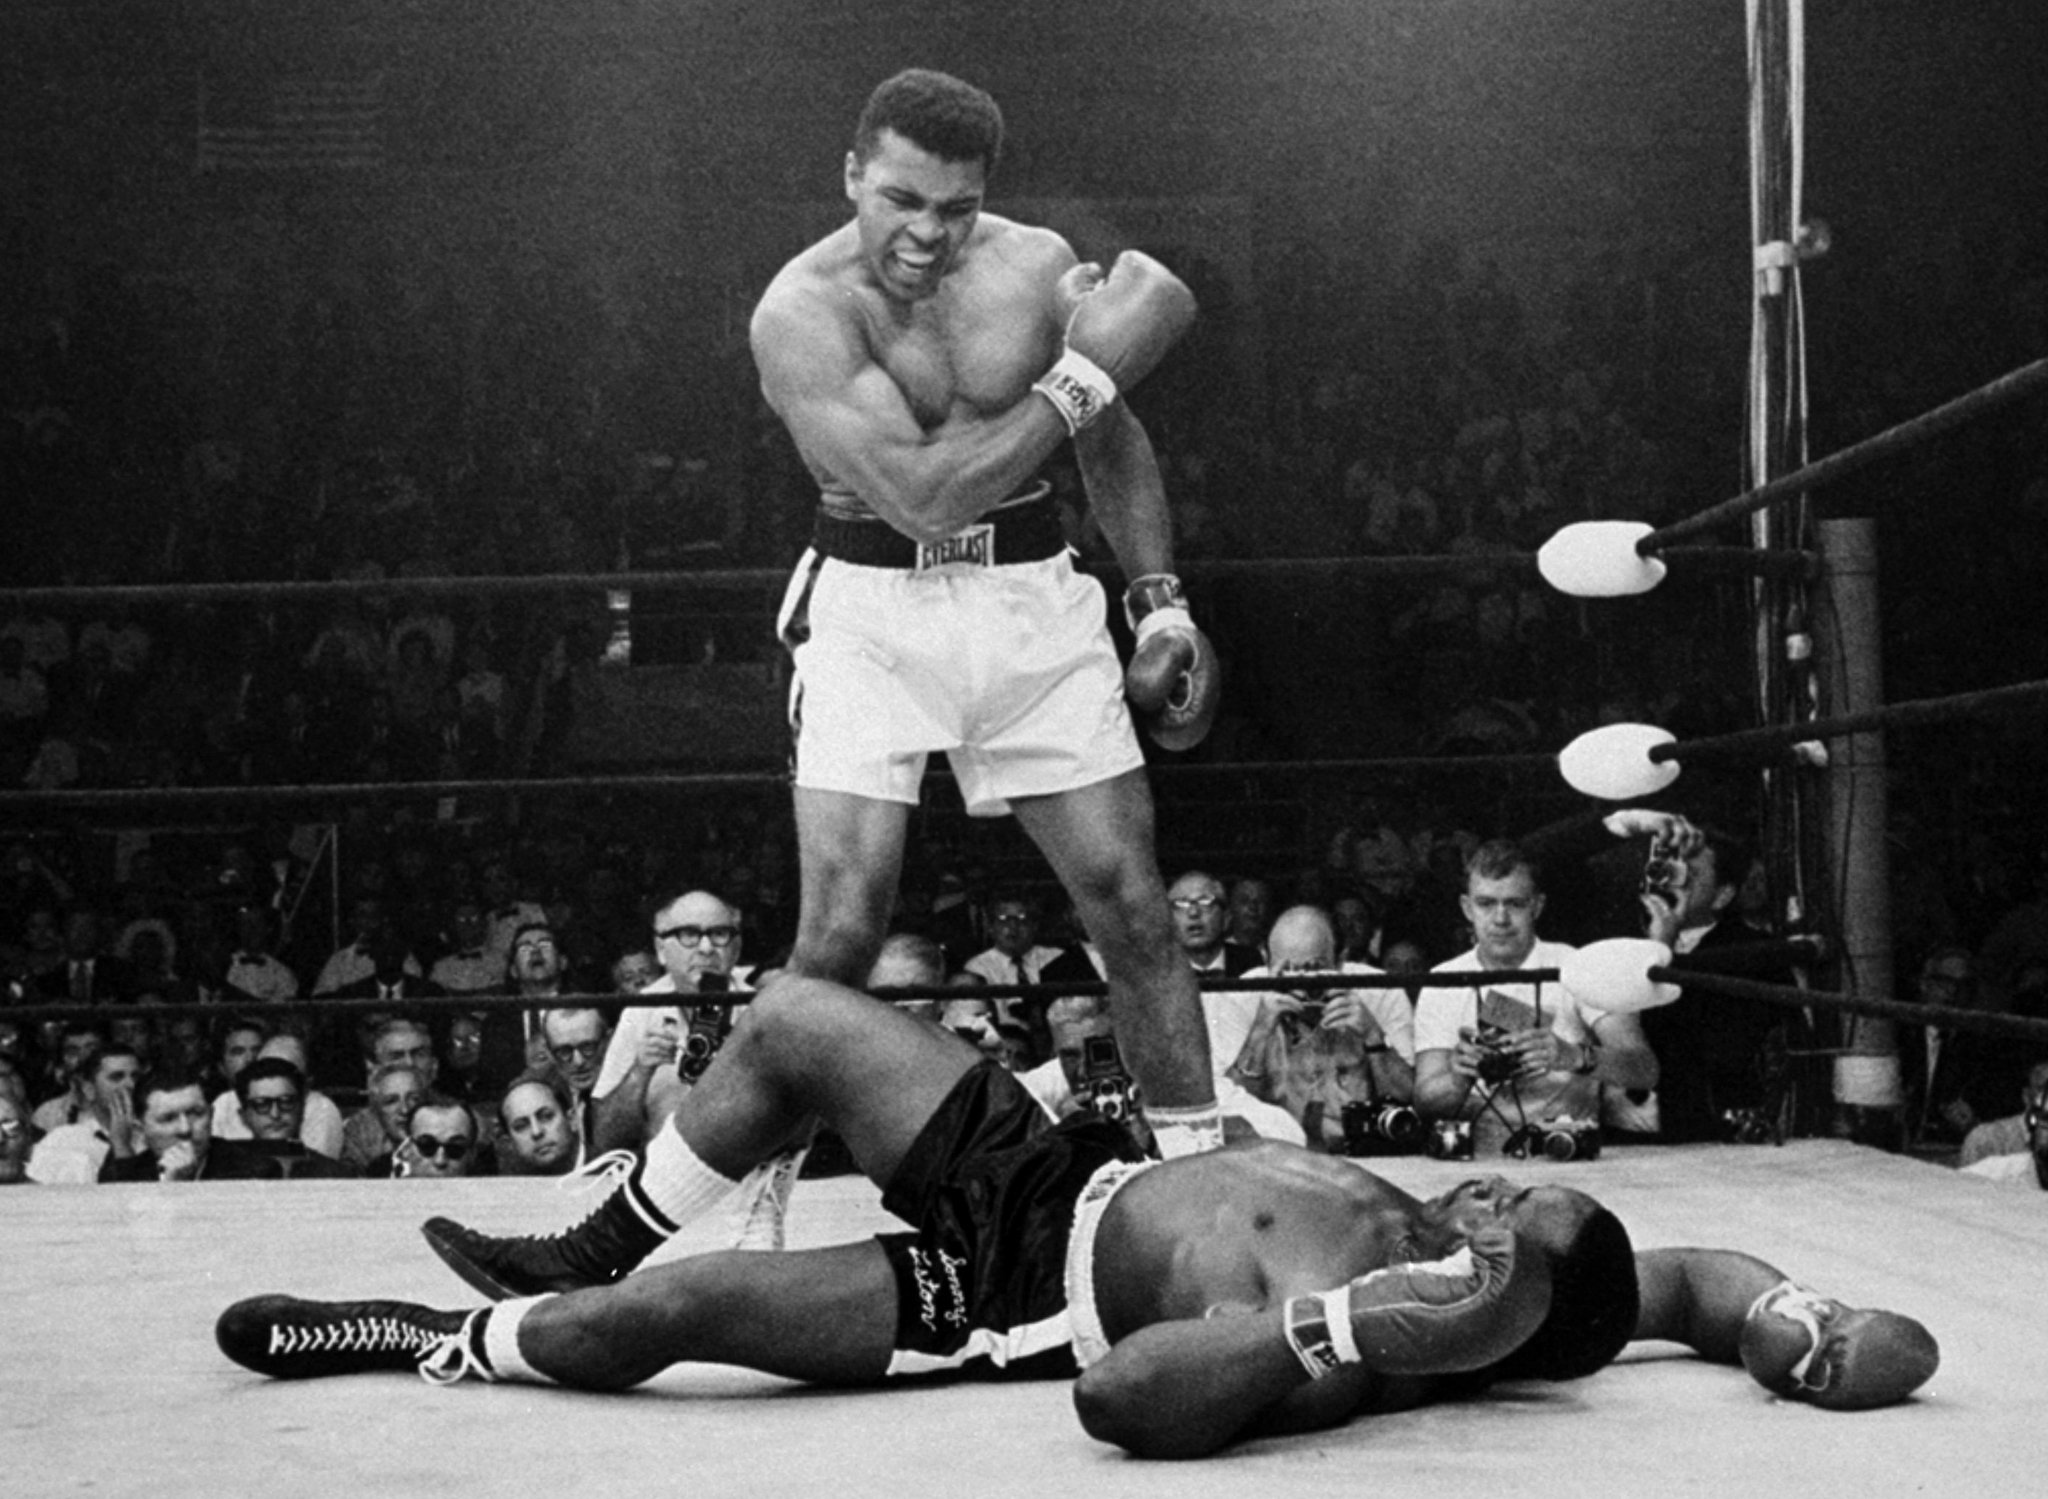 This is the picture of Muhammad Ali standing over Sonny Liston after one minute in the ring; he won this fight on his own with nobody on his side. After telling the world of his religion he lost all the people that once backed him, Sonny had gained all of Ali's previous followers because if you did support him you were just as bad as he was. People hated this picture because you could see Ali's dominance, this shows his passion and the strength of the main that had just been victorious.